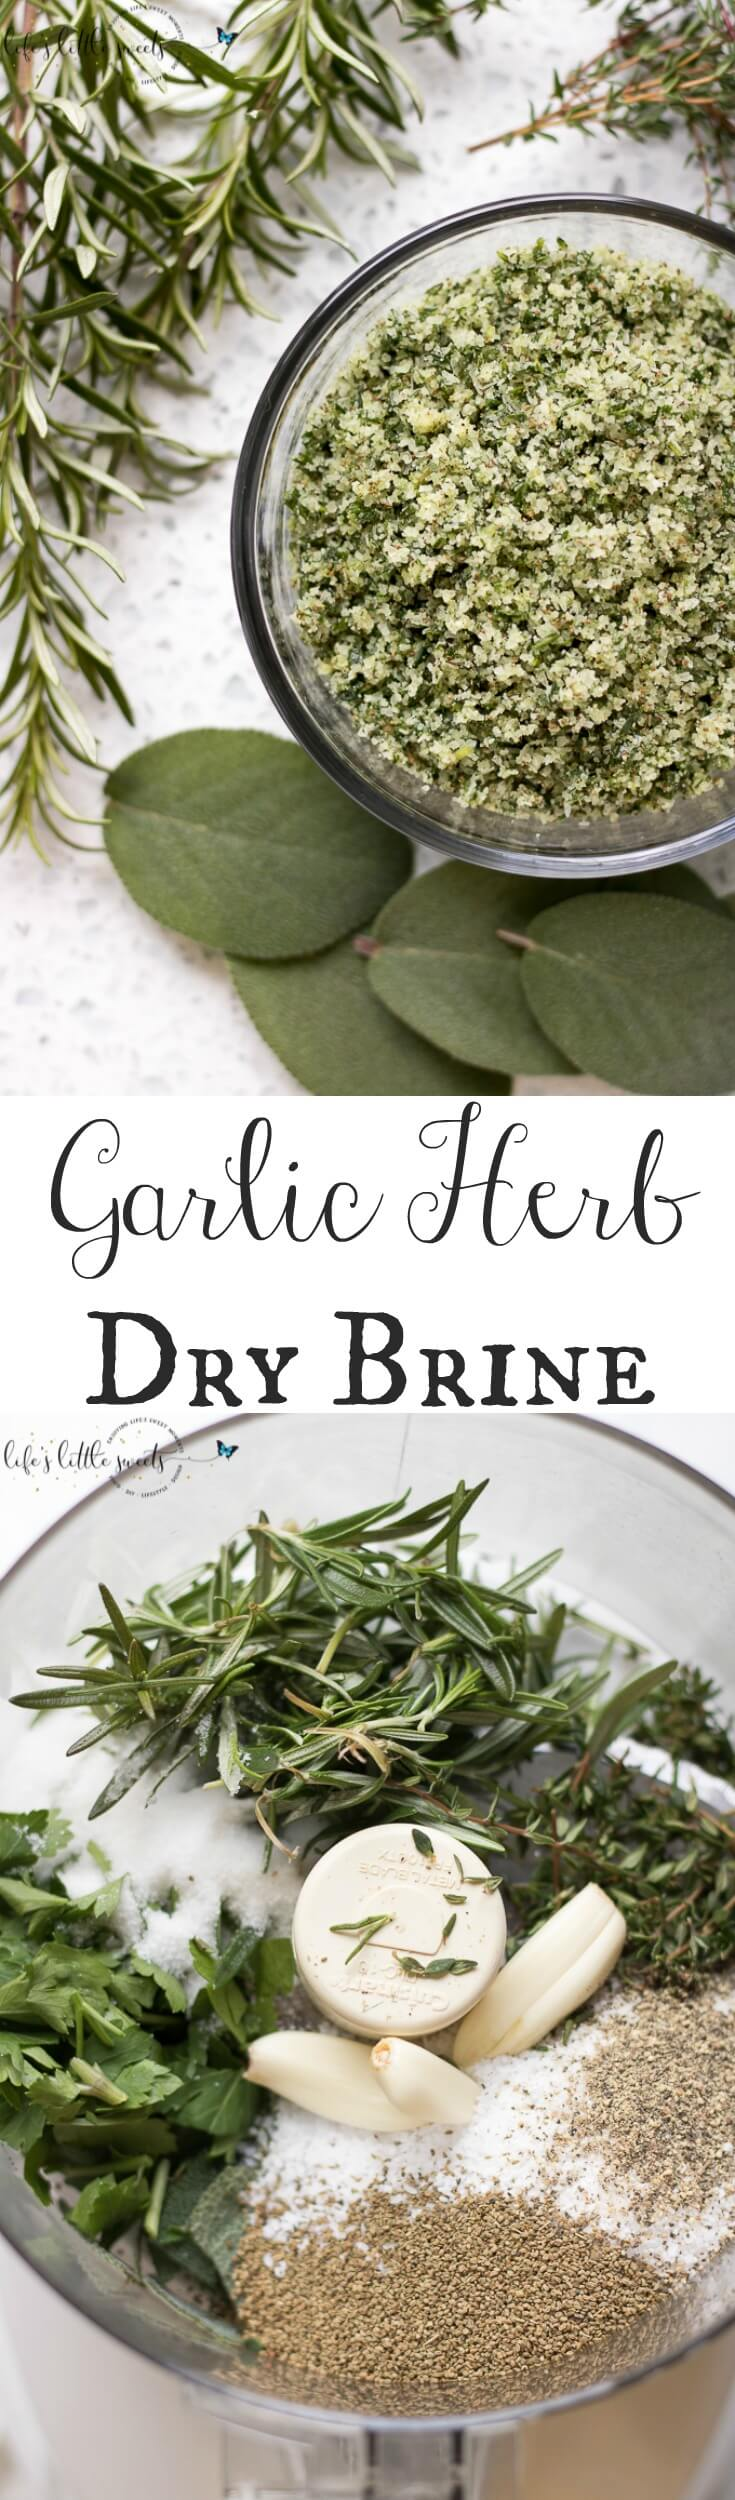 This Garlic Herb Dry Brine makes a turkey or roast delicious, flavorful and savory. A key dry brine recipe to have in your back pocket! #garlic #koshersalt #sage #rosemary #thyme #garlic #celeryseeds #sugar #blackpepper #herb #drybrine